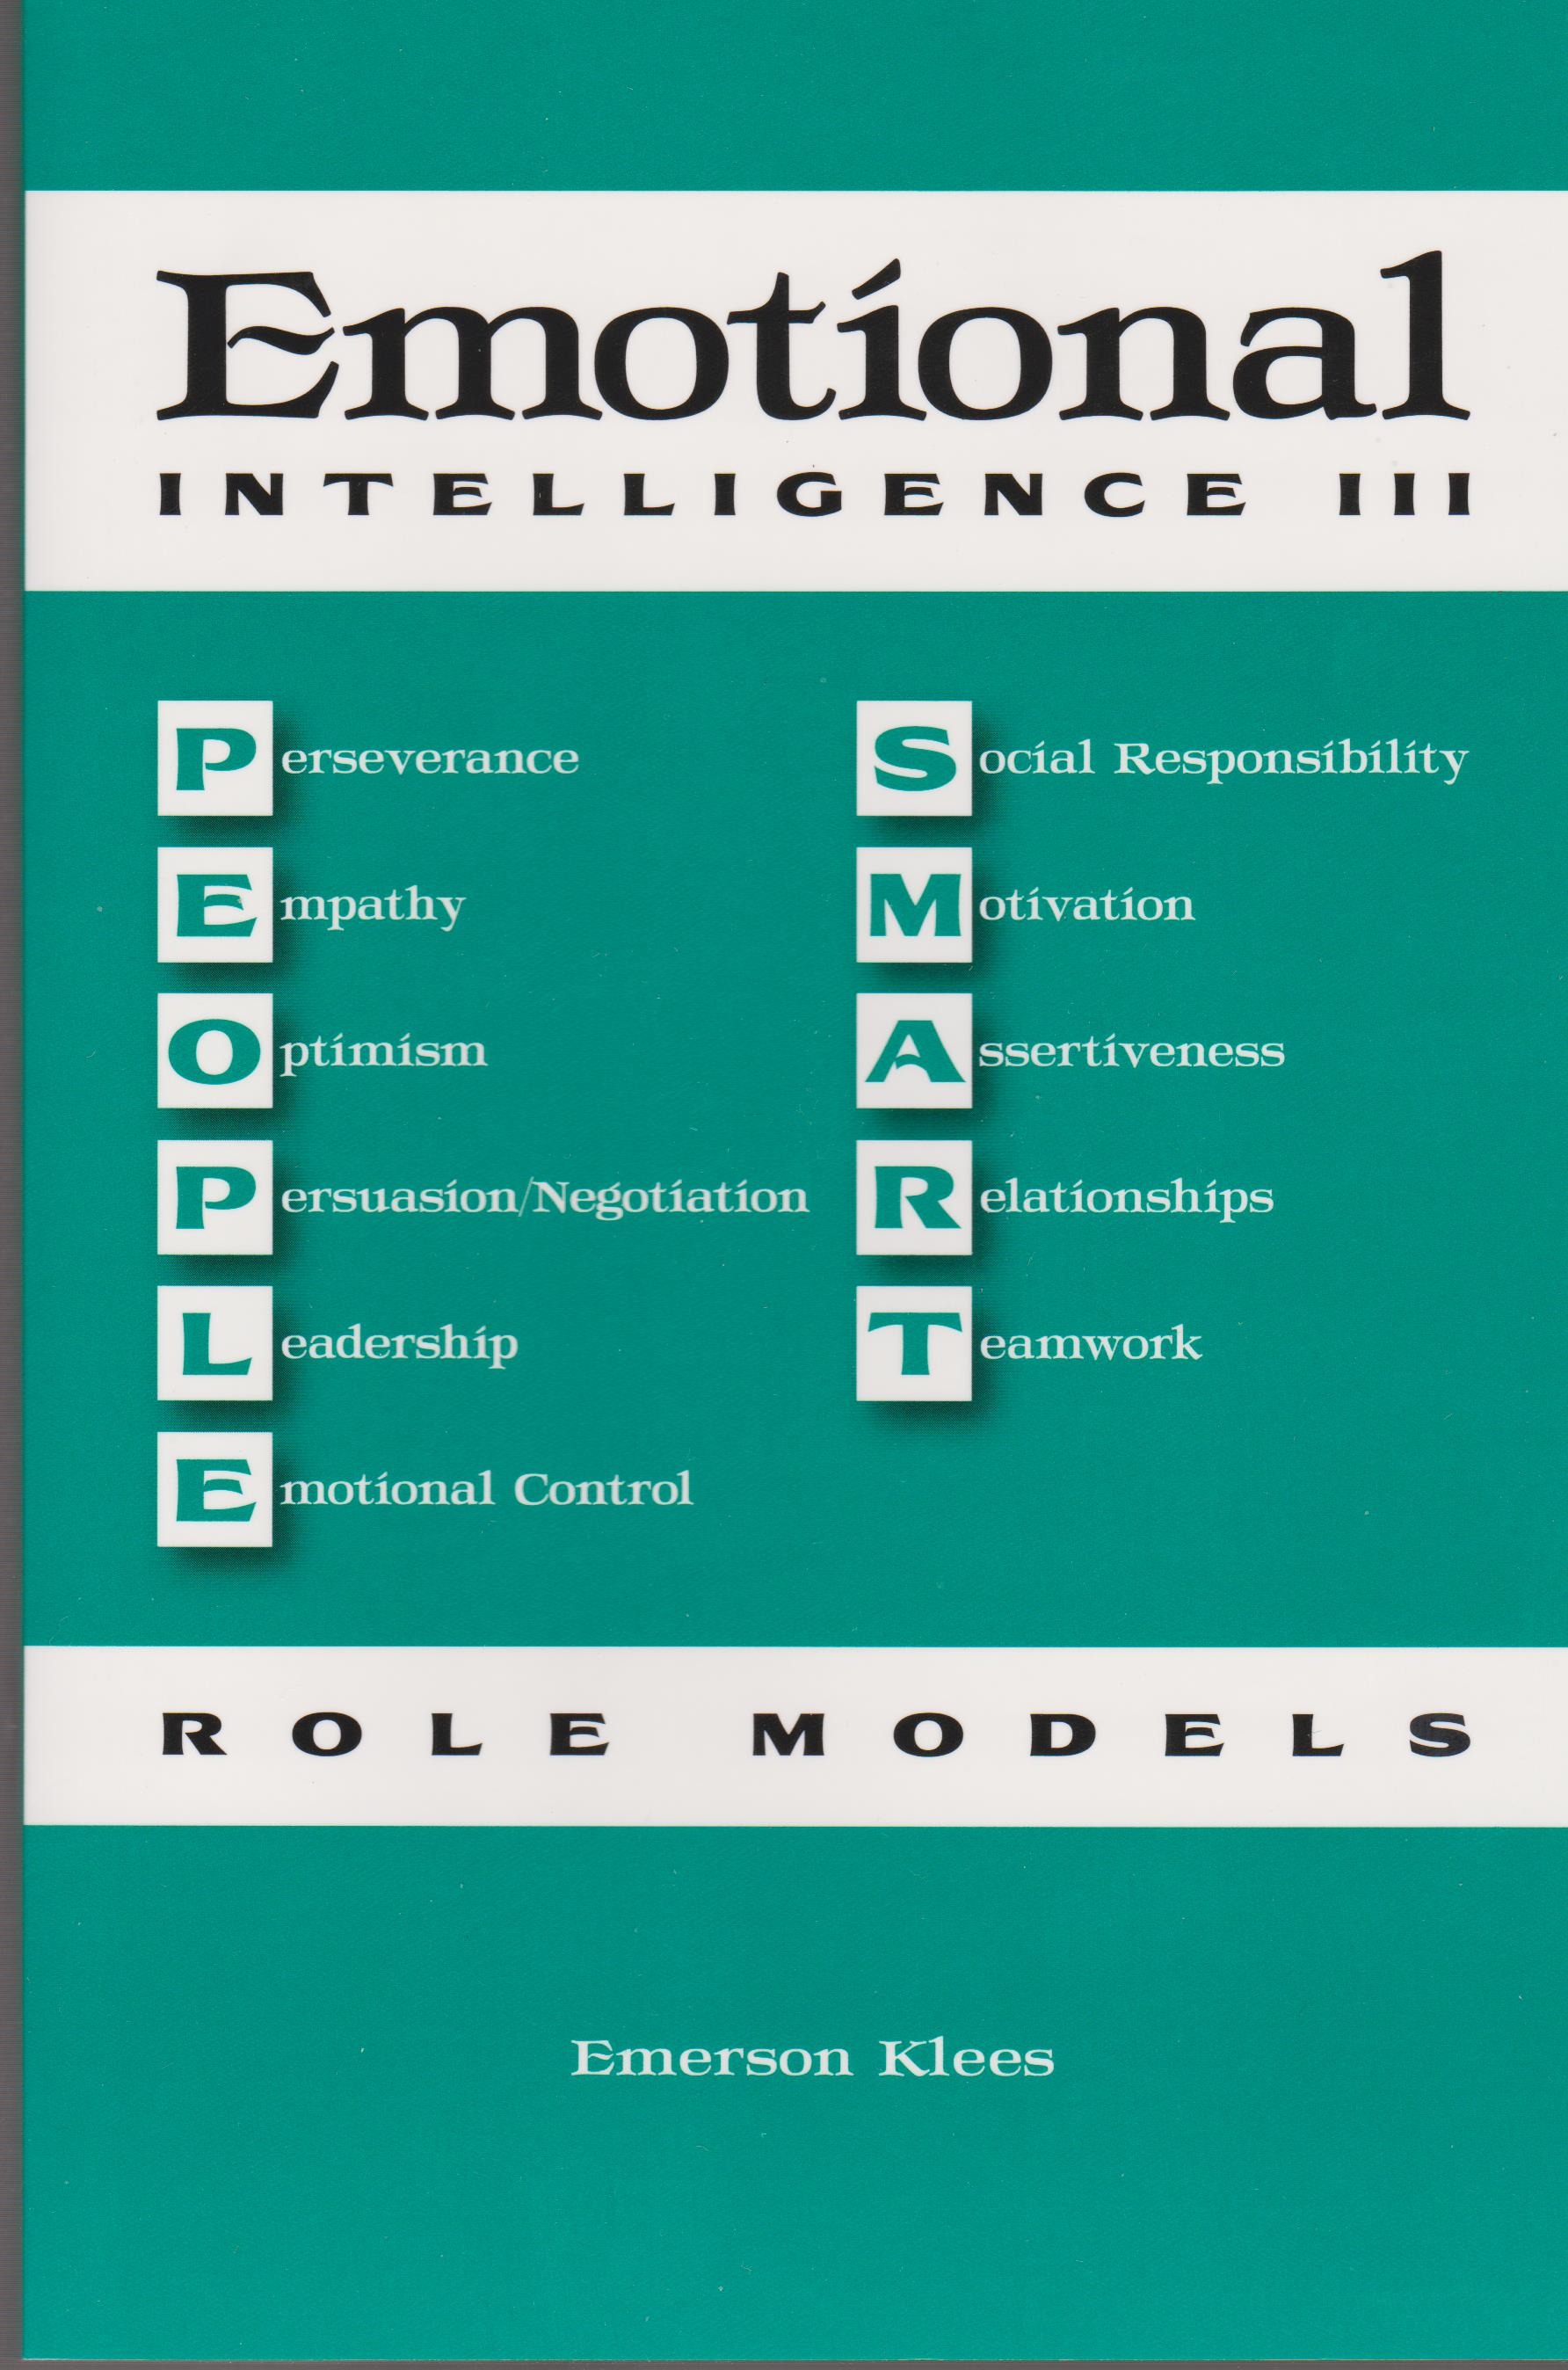 Emotional Intelligence III: People Smart Role Models